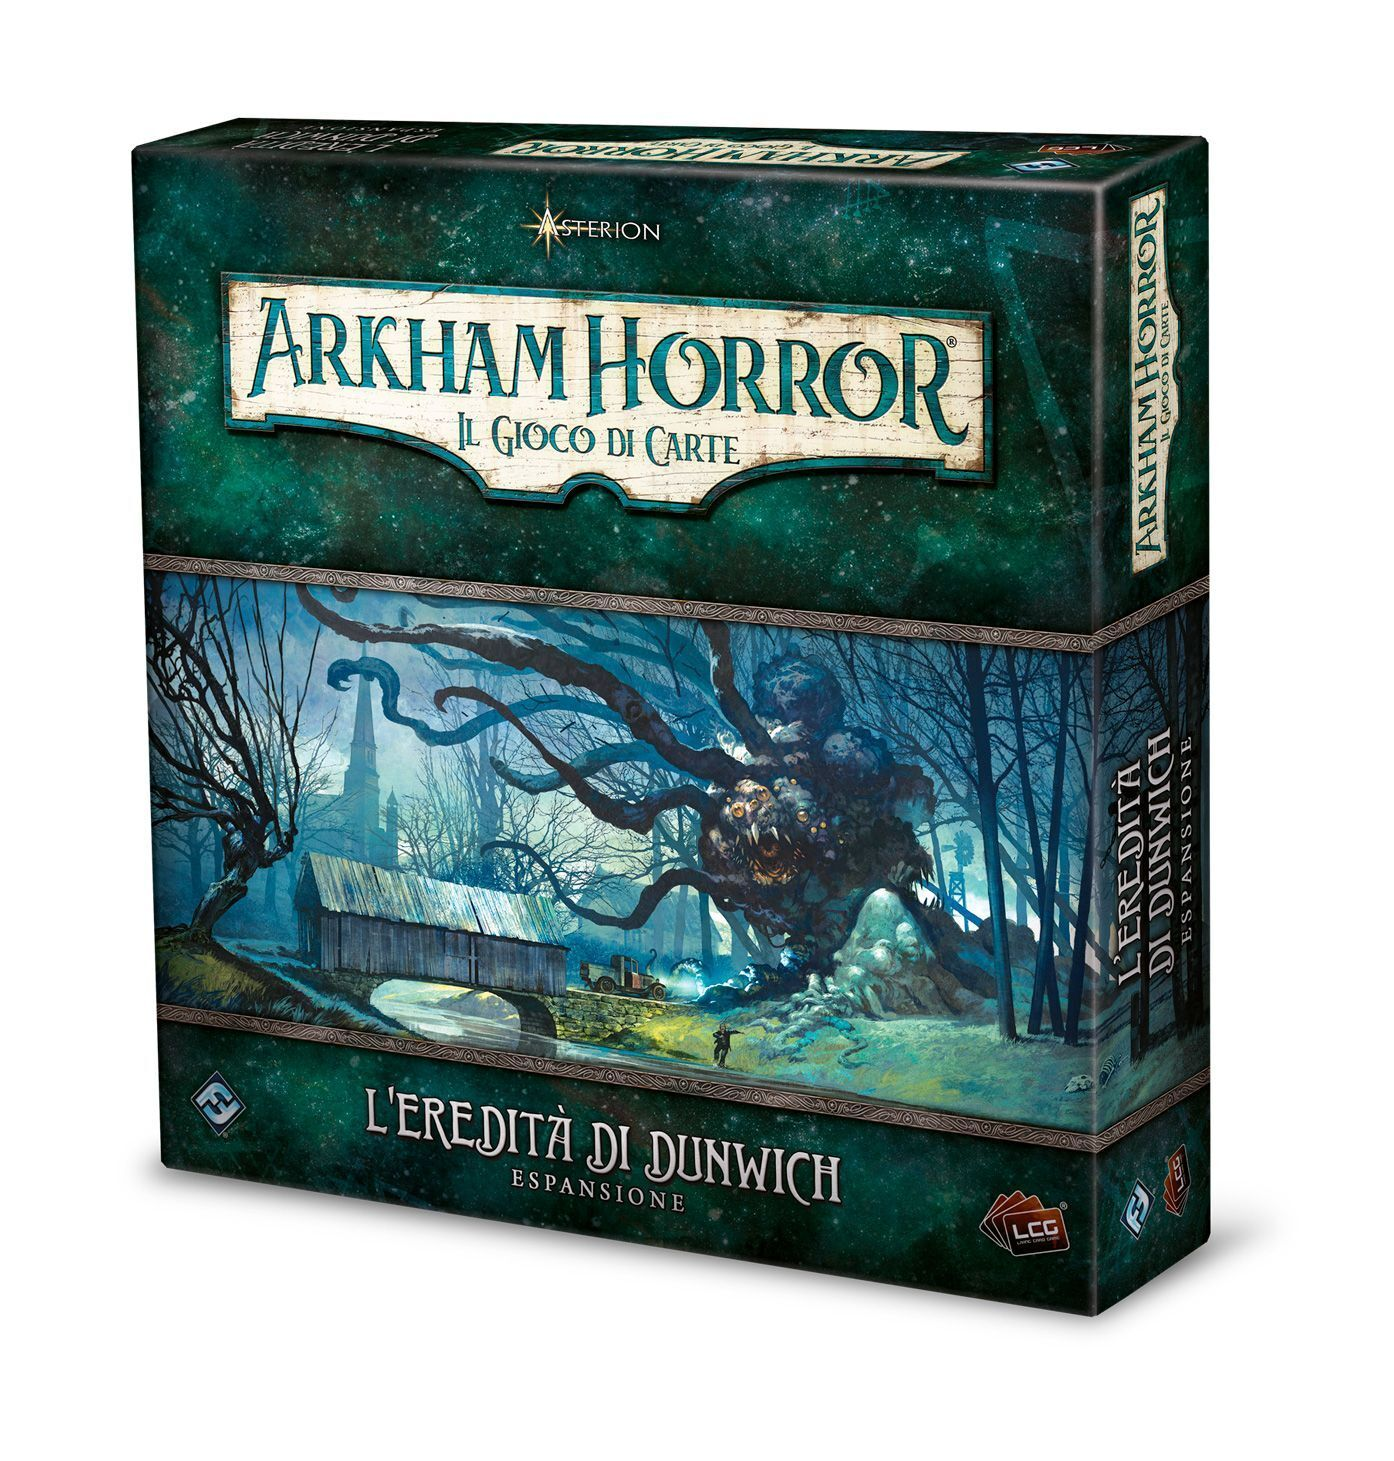 Arkham Horror the Game Cards, LCG, L'Inheritance of Dunwich, Expansion, Italiano